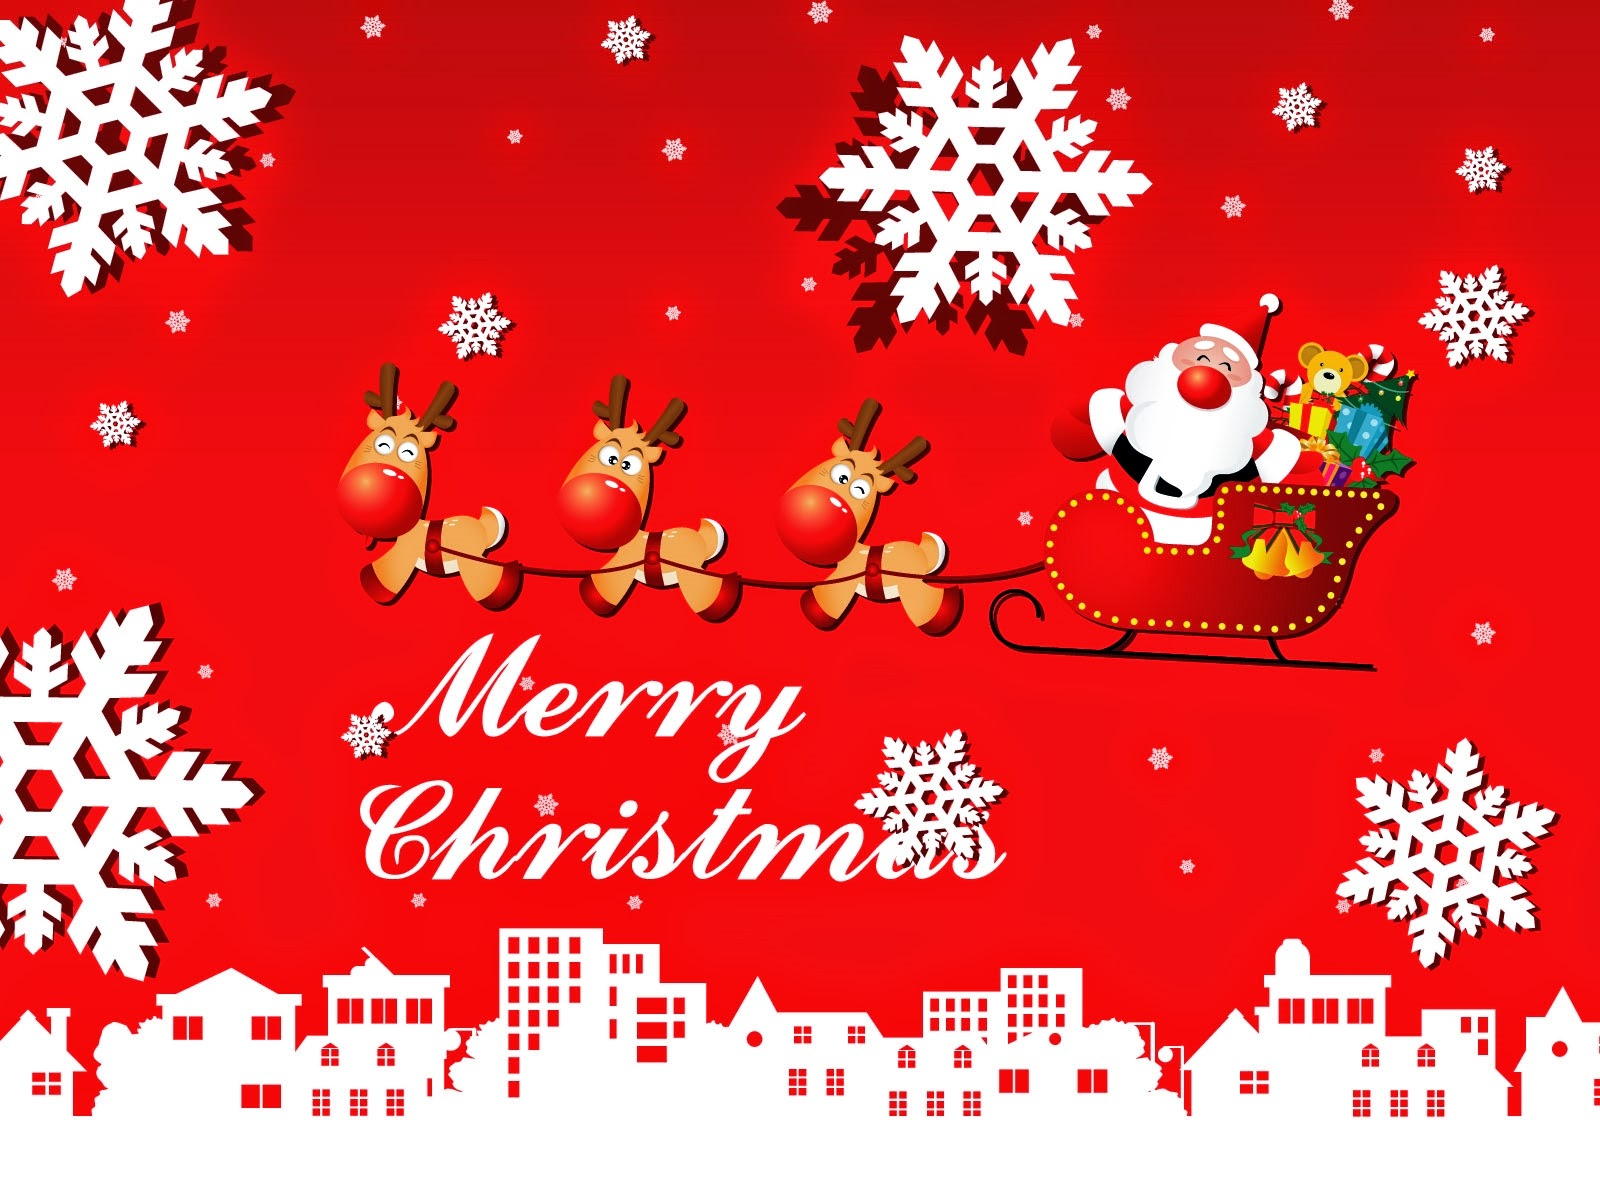 25 best merry christmas 2014 wallpapers/images/greeting | makar